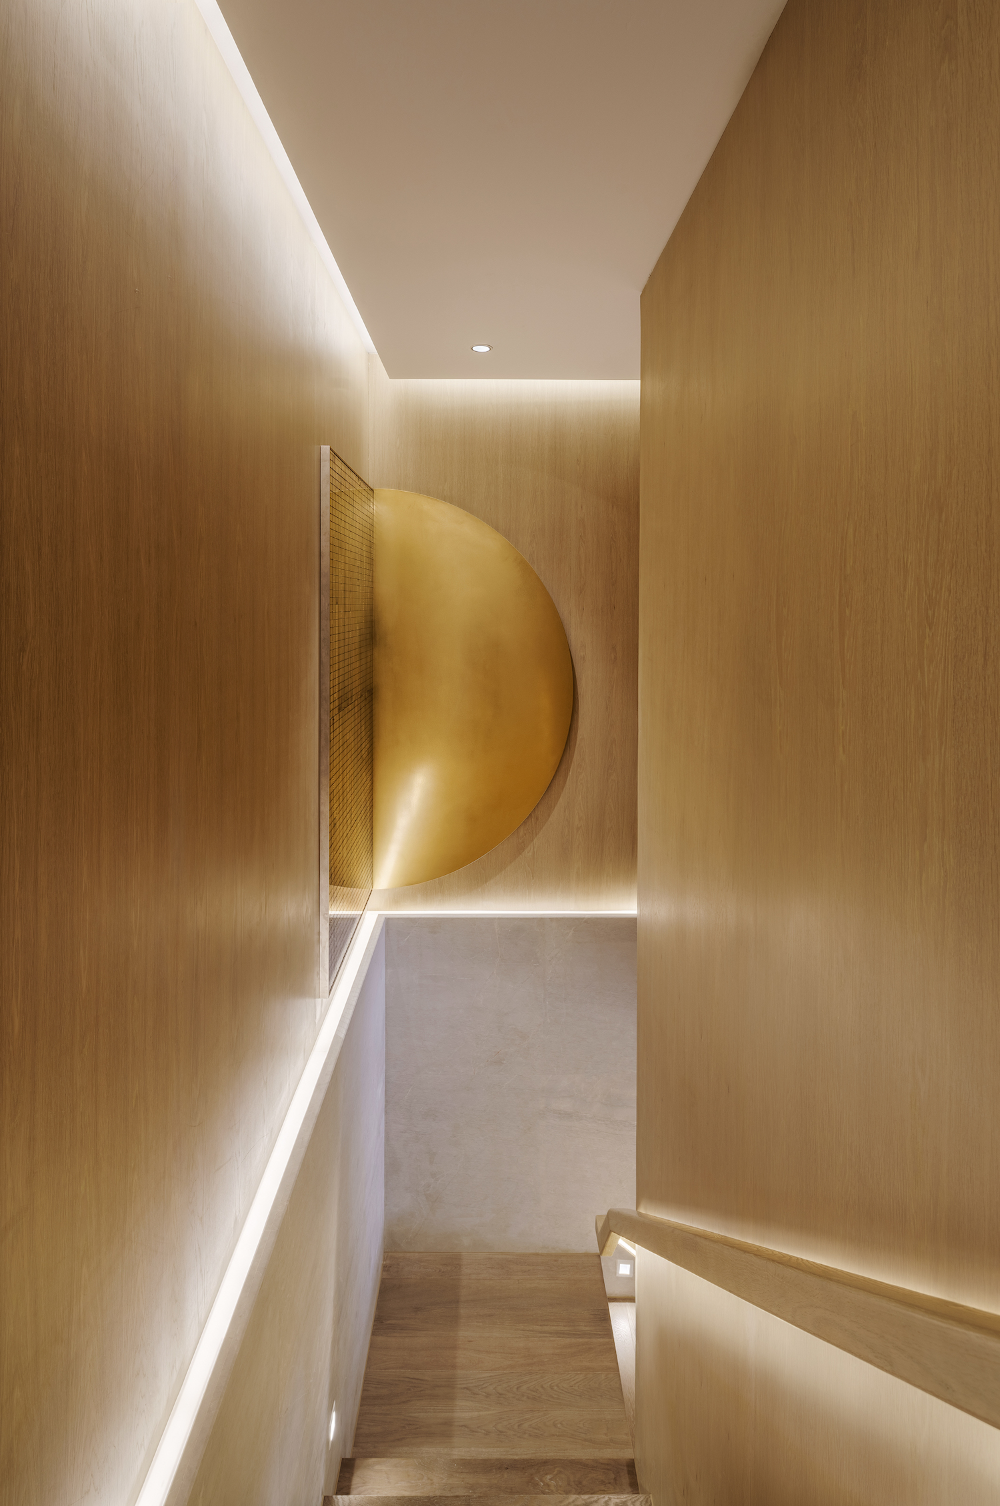 Jing'an Residence in 2020 Latest house designs, Jing'an